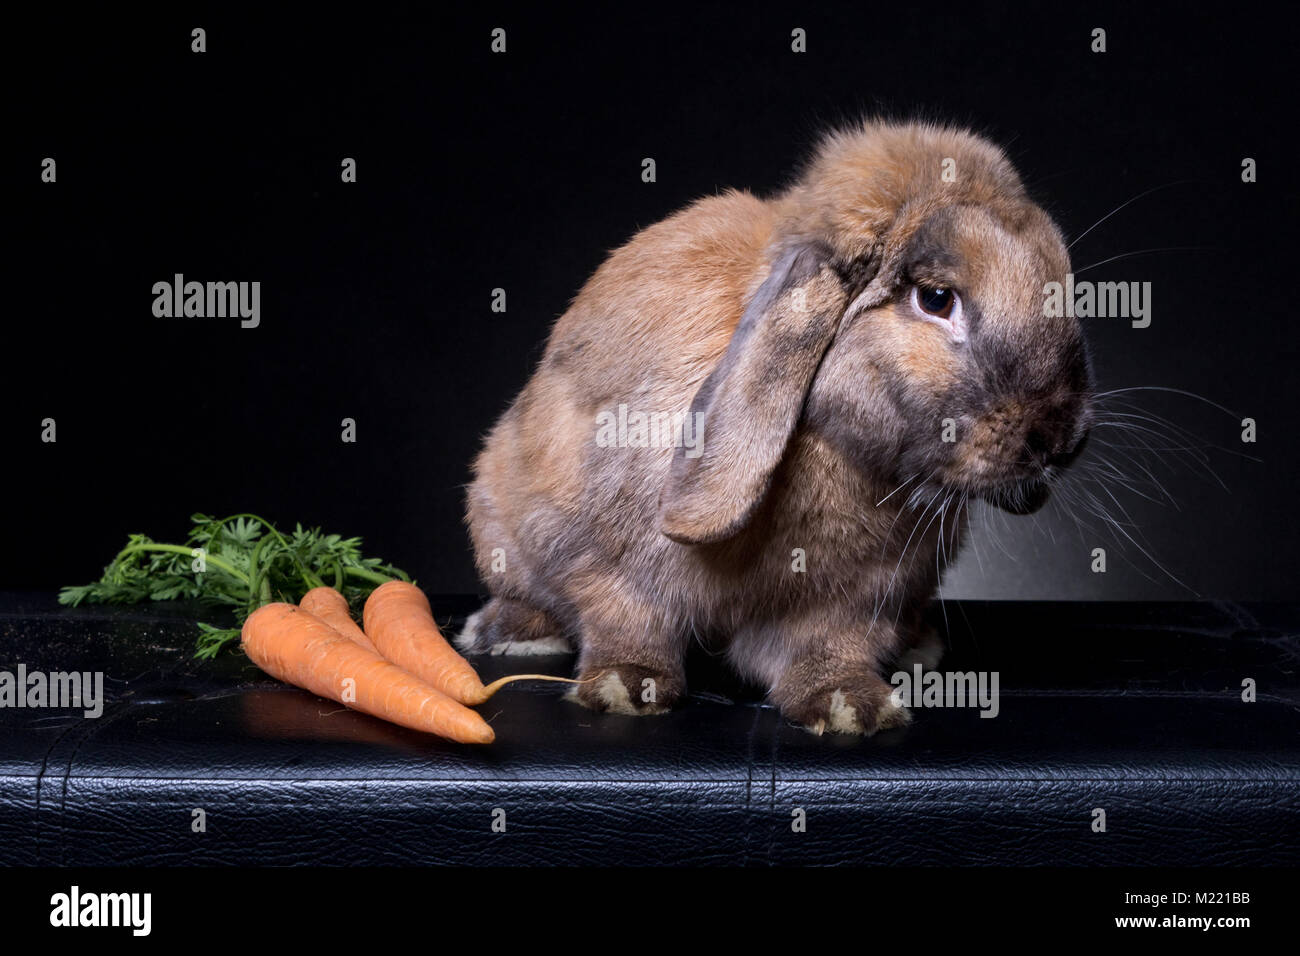 brown bunny rabbit portrait looking right  on black background, with carrots - Stock Image